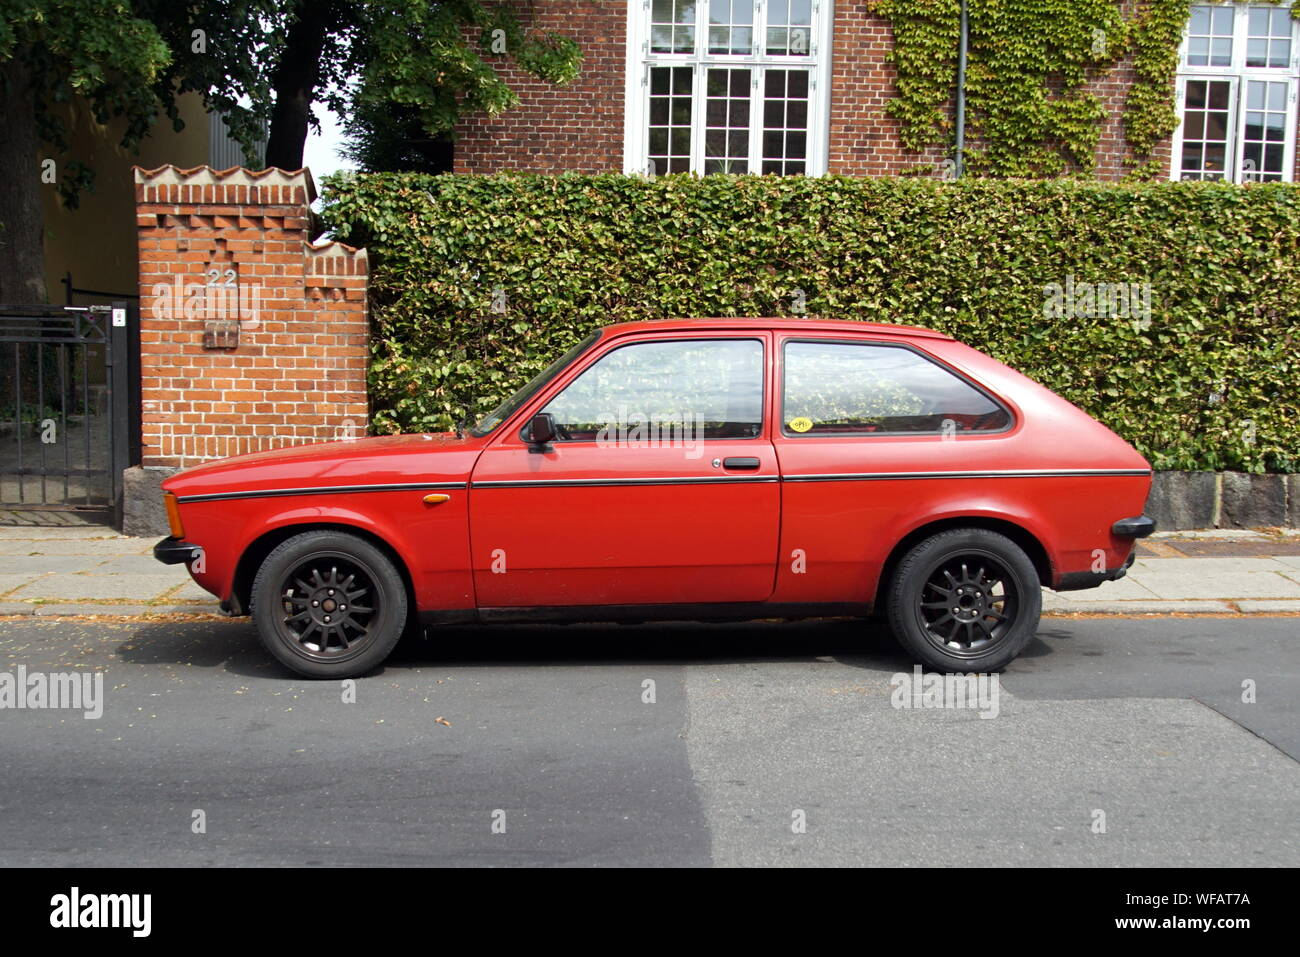 Riskilde Denmark July 19 2019 Opel Kadett C City Parked By The Side Of The Road Nobody In The Vehicle Stock Photo Alamy